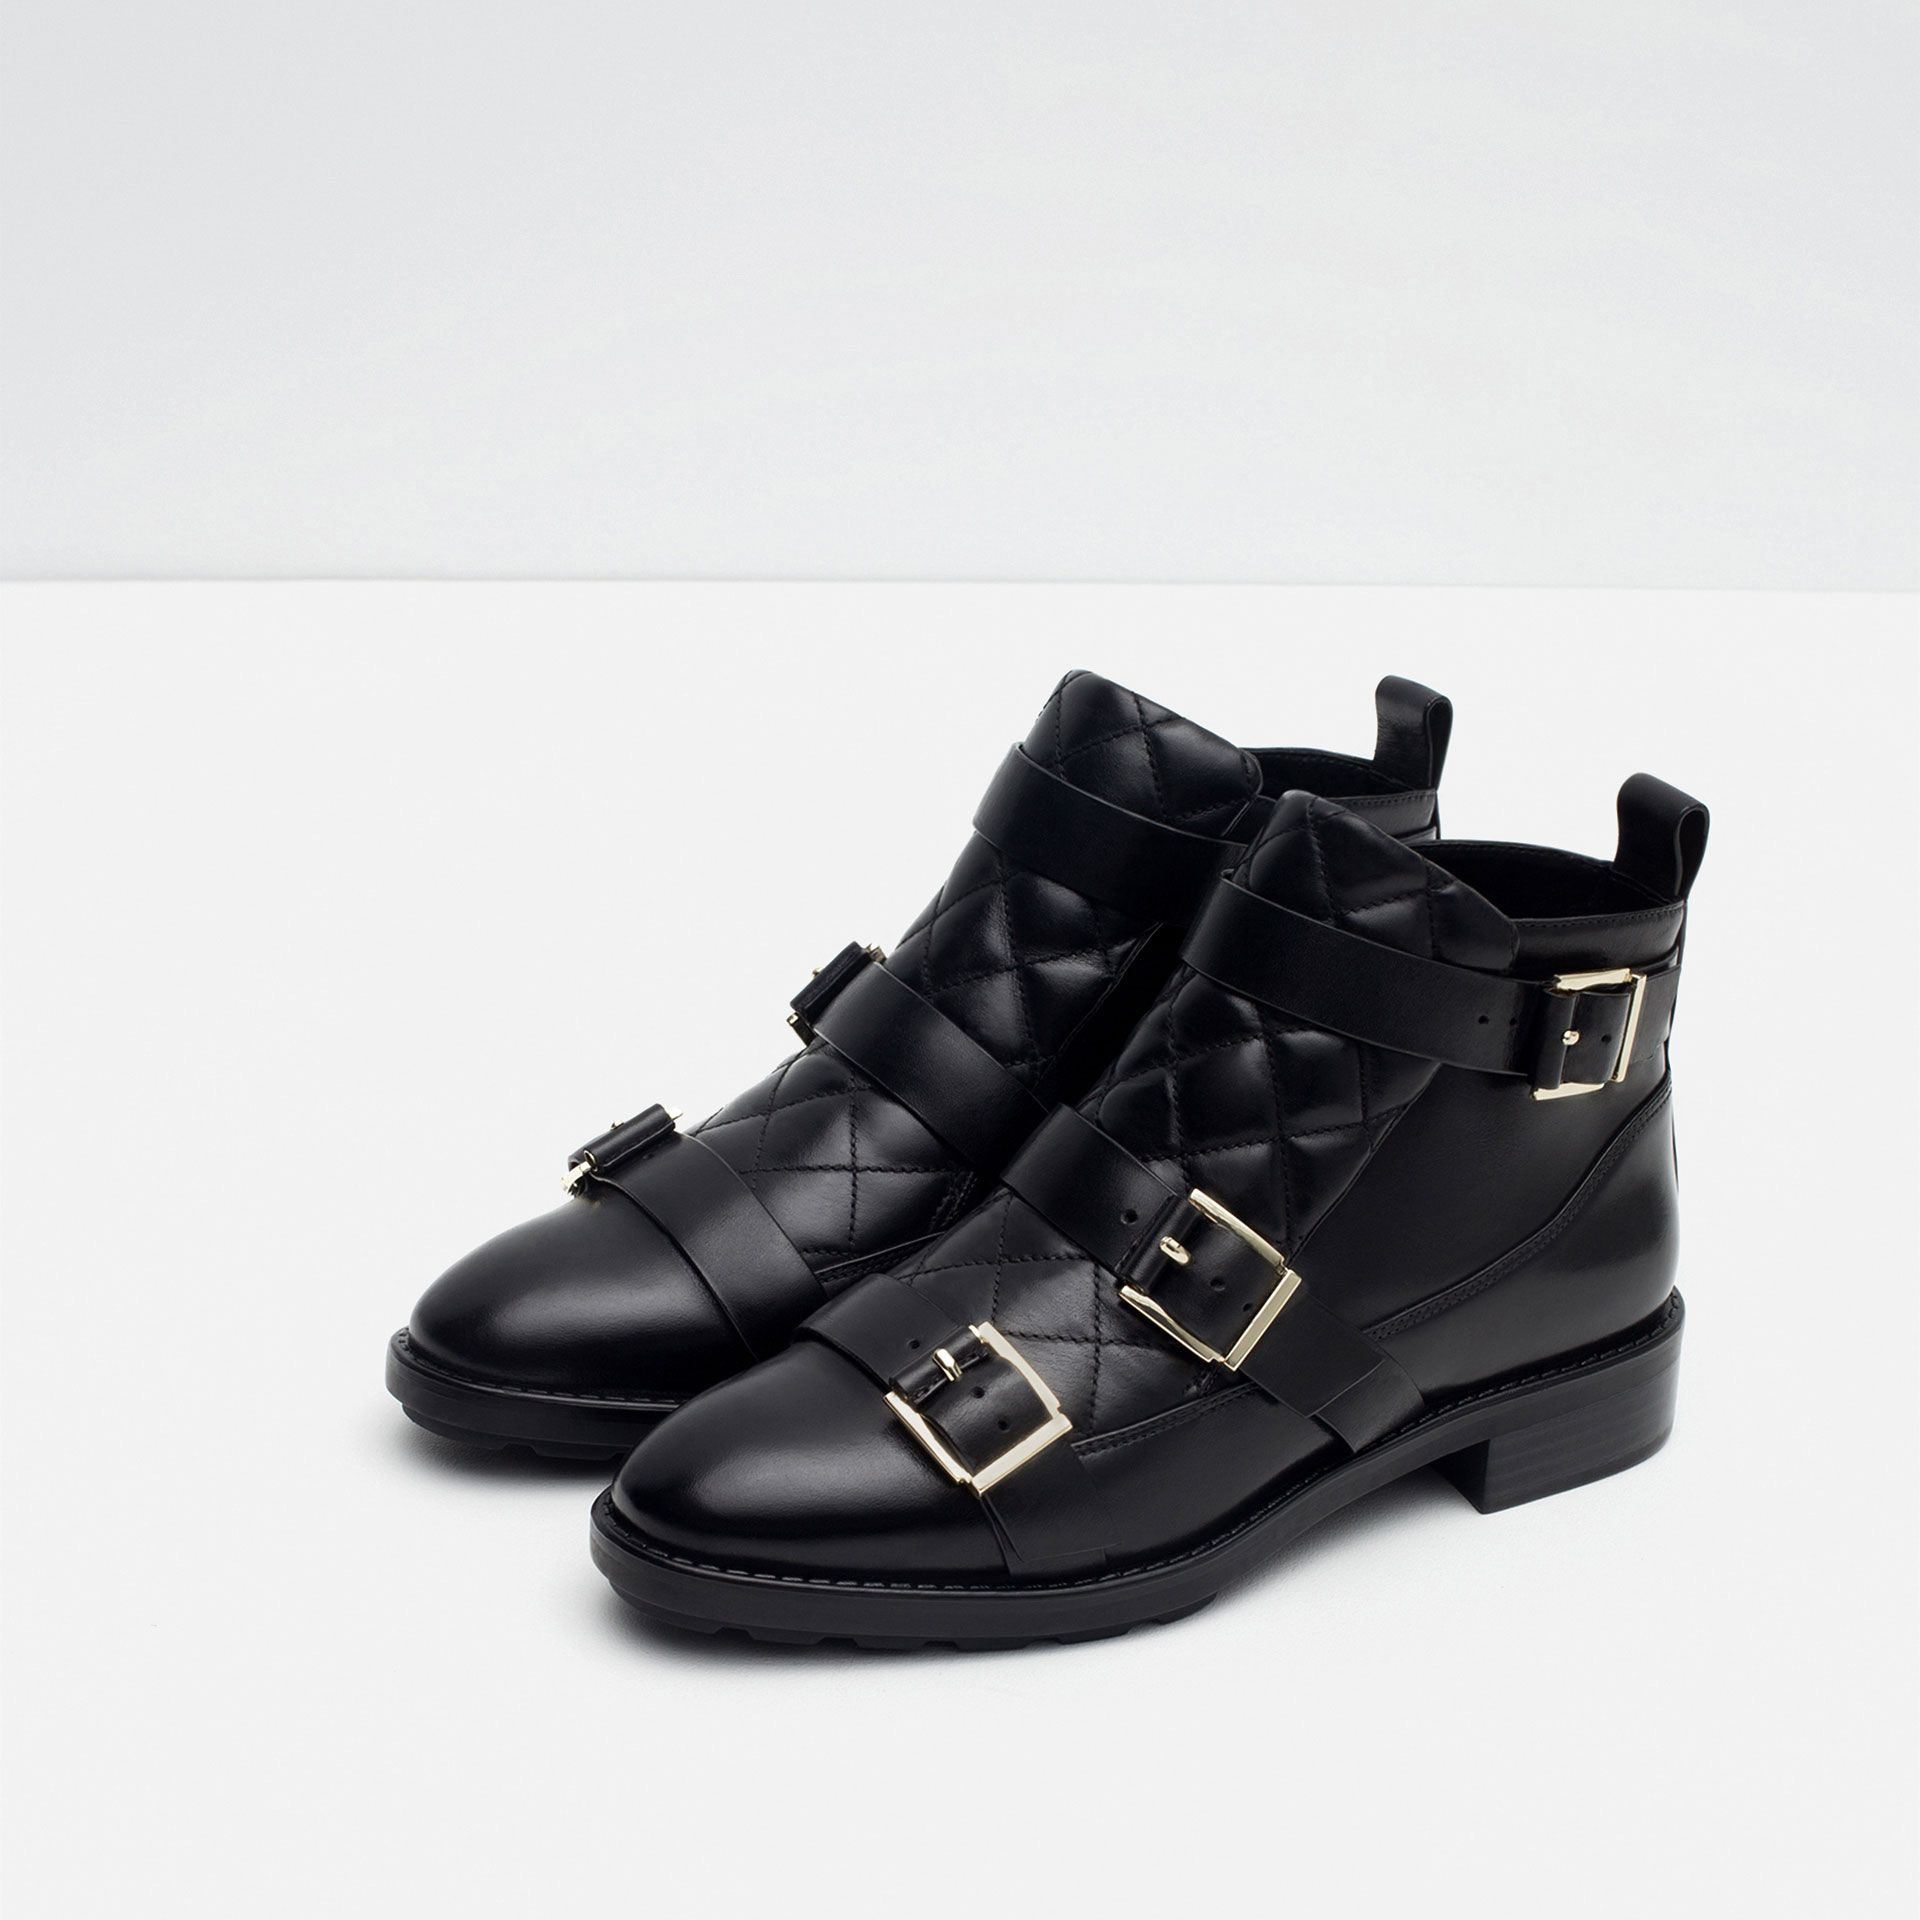 blackNew Shoes Cure BluesBottines the Zara boots en SzMVpqU